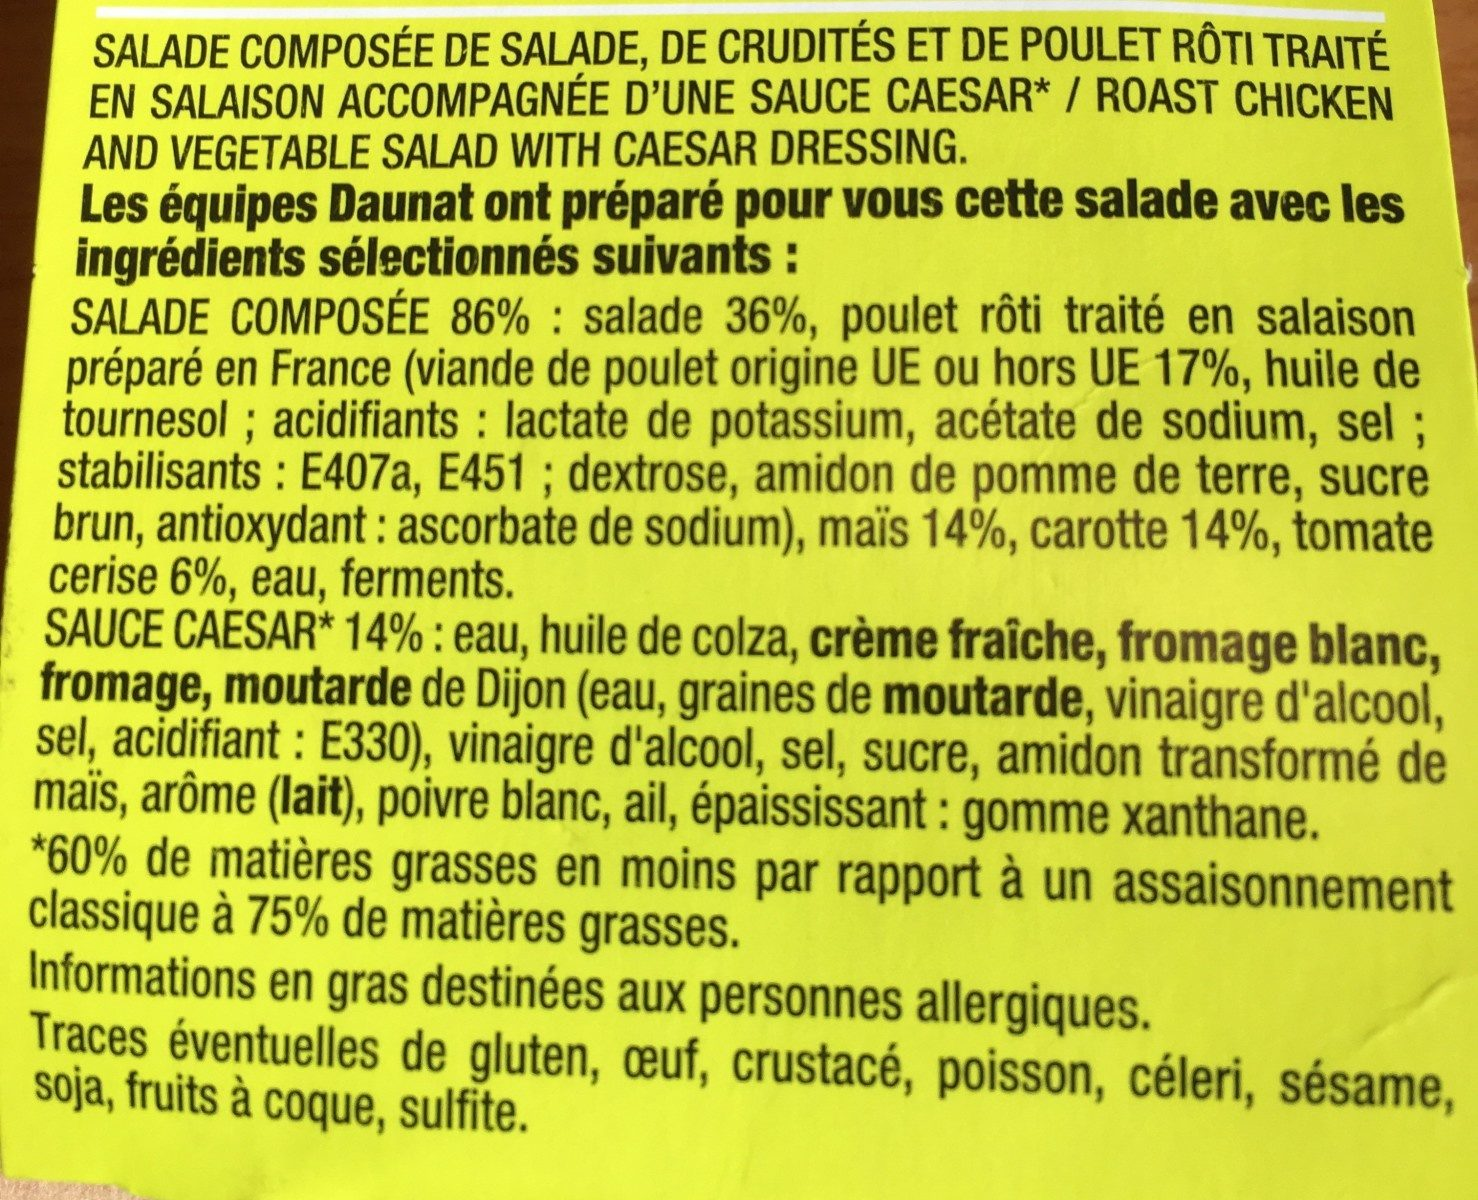 Poulet salade crudité sauce caesar - Ingredients